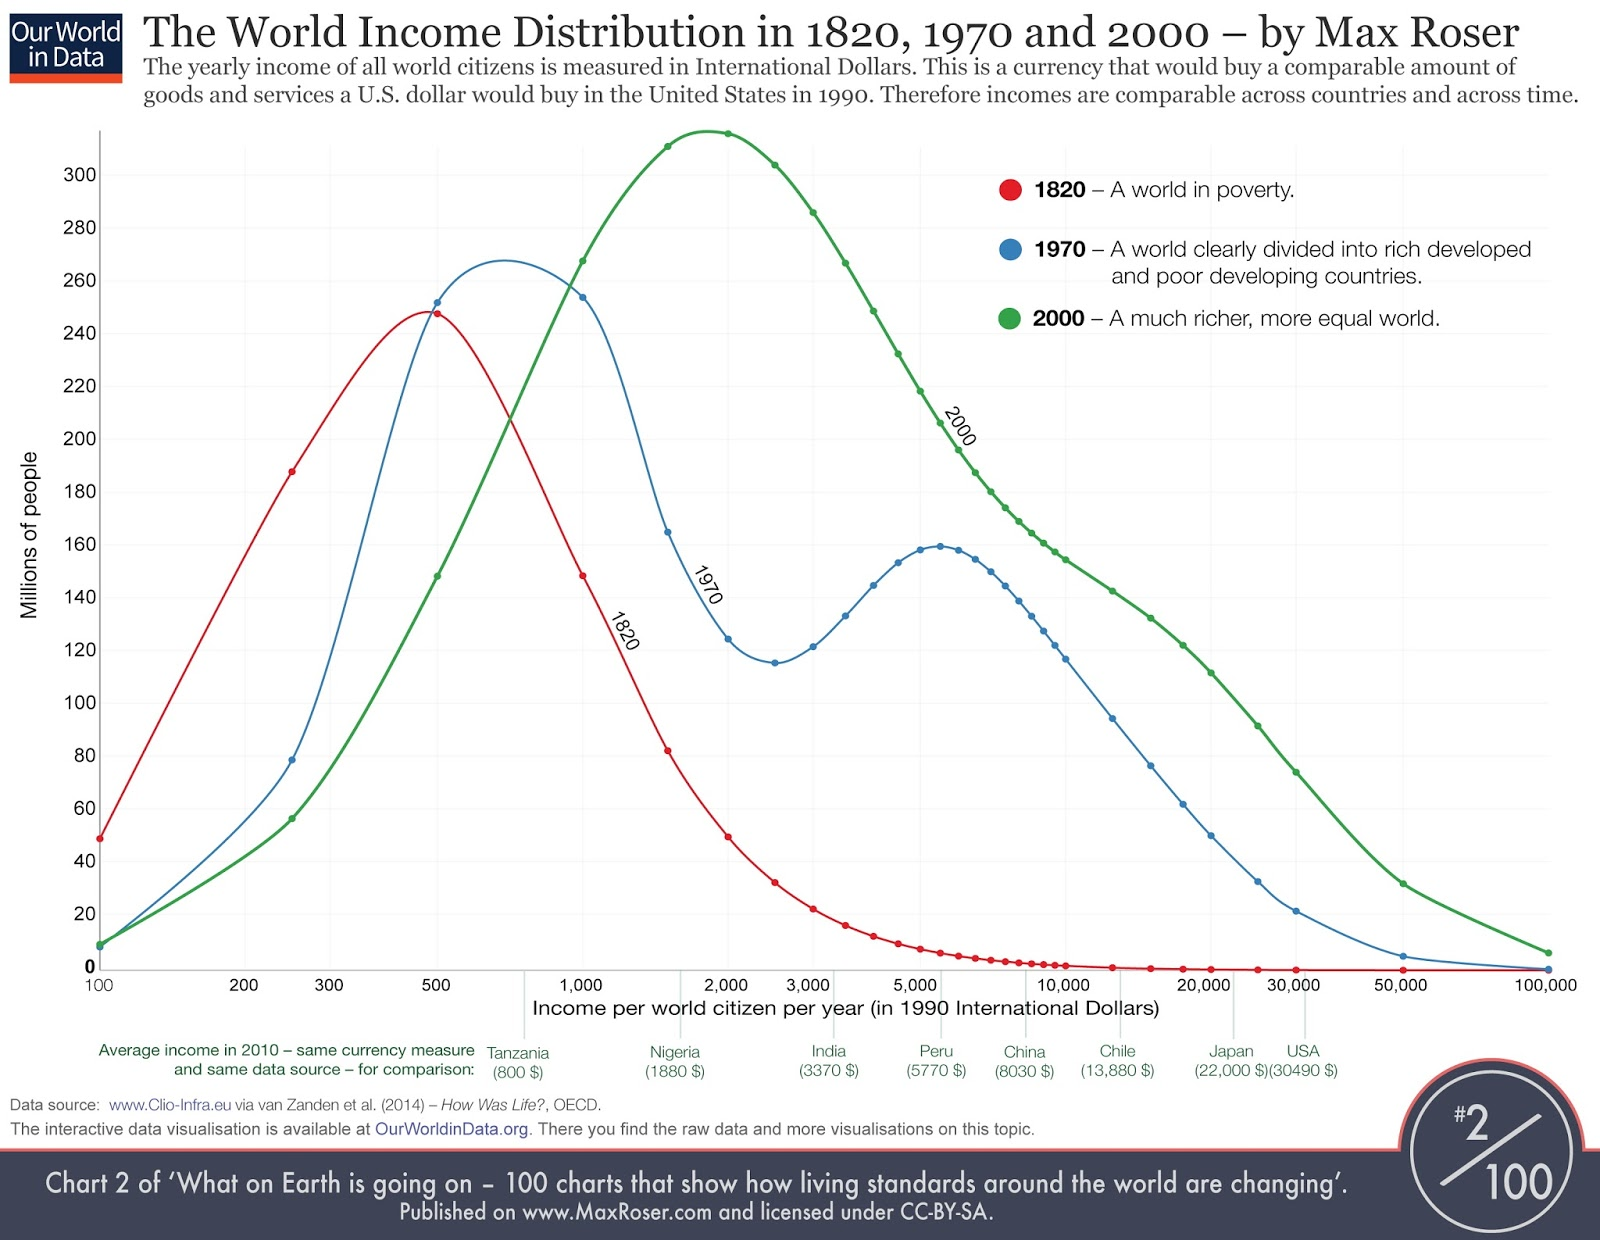 The World income distribution in 1820, 1970 & 2000